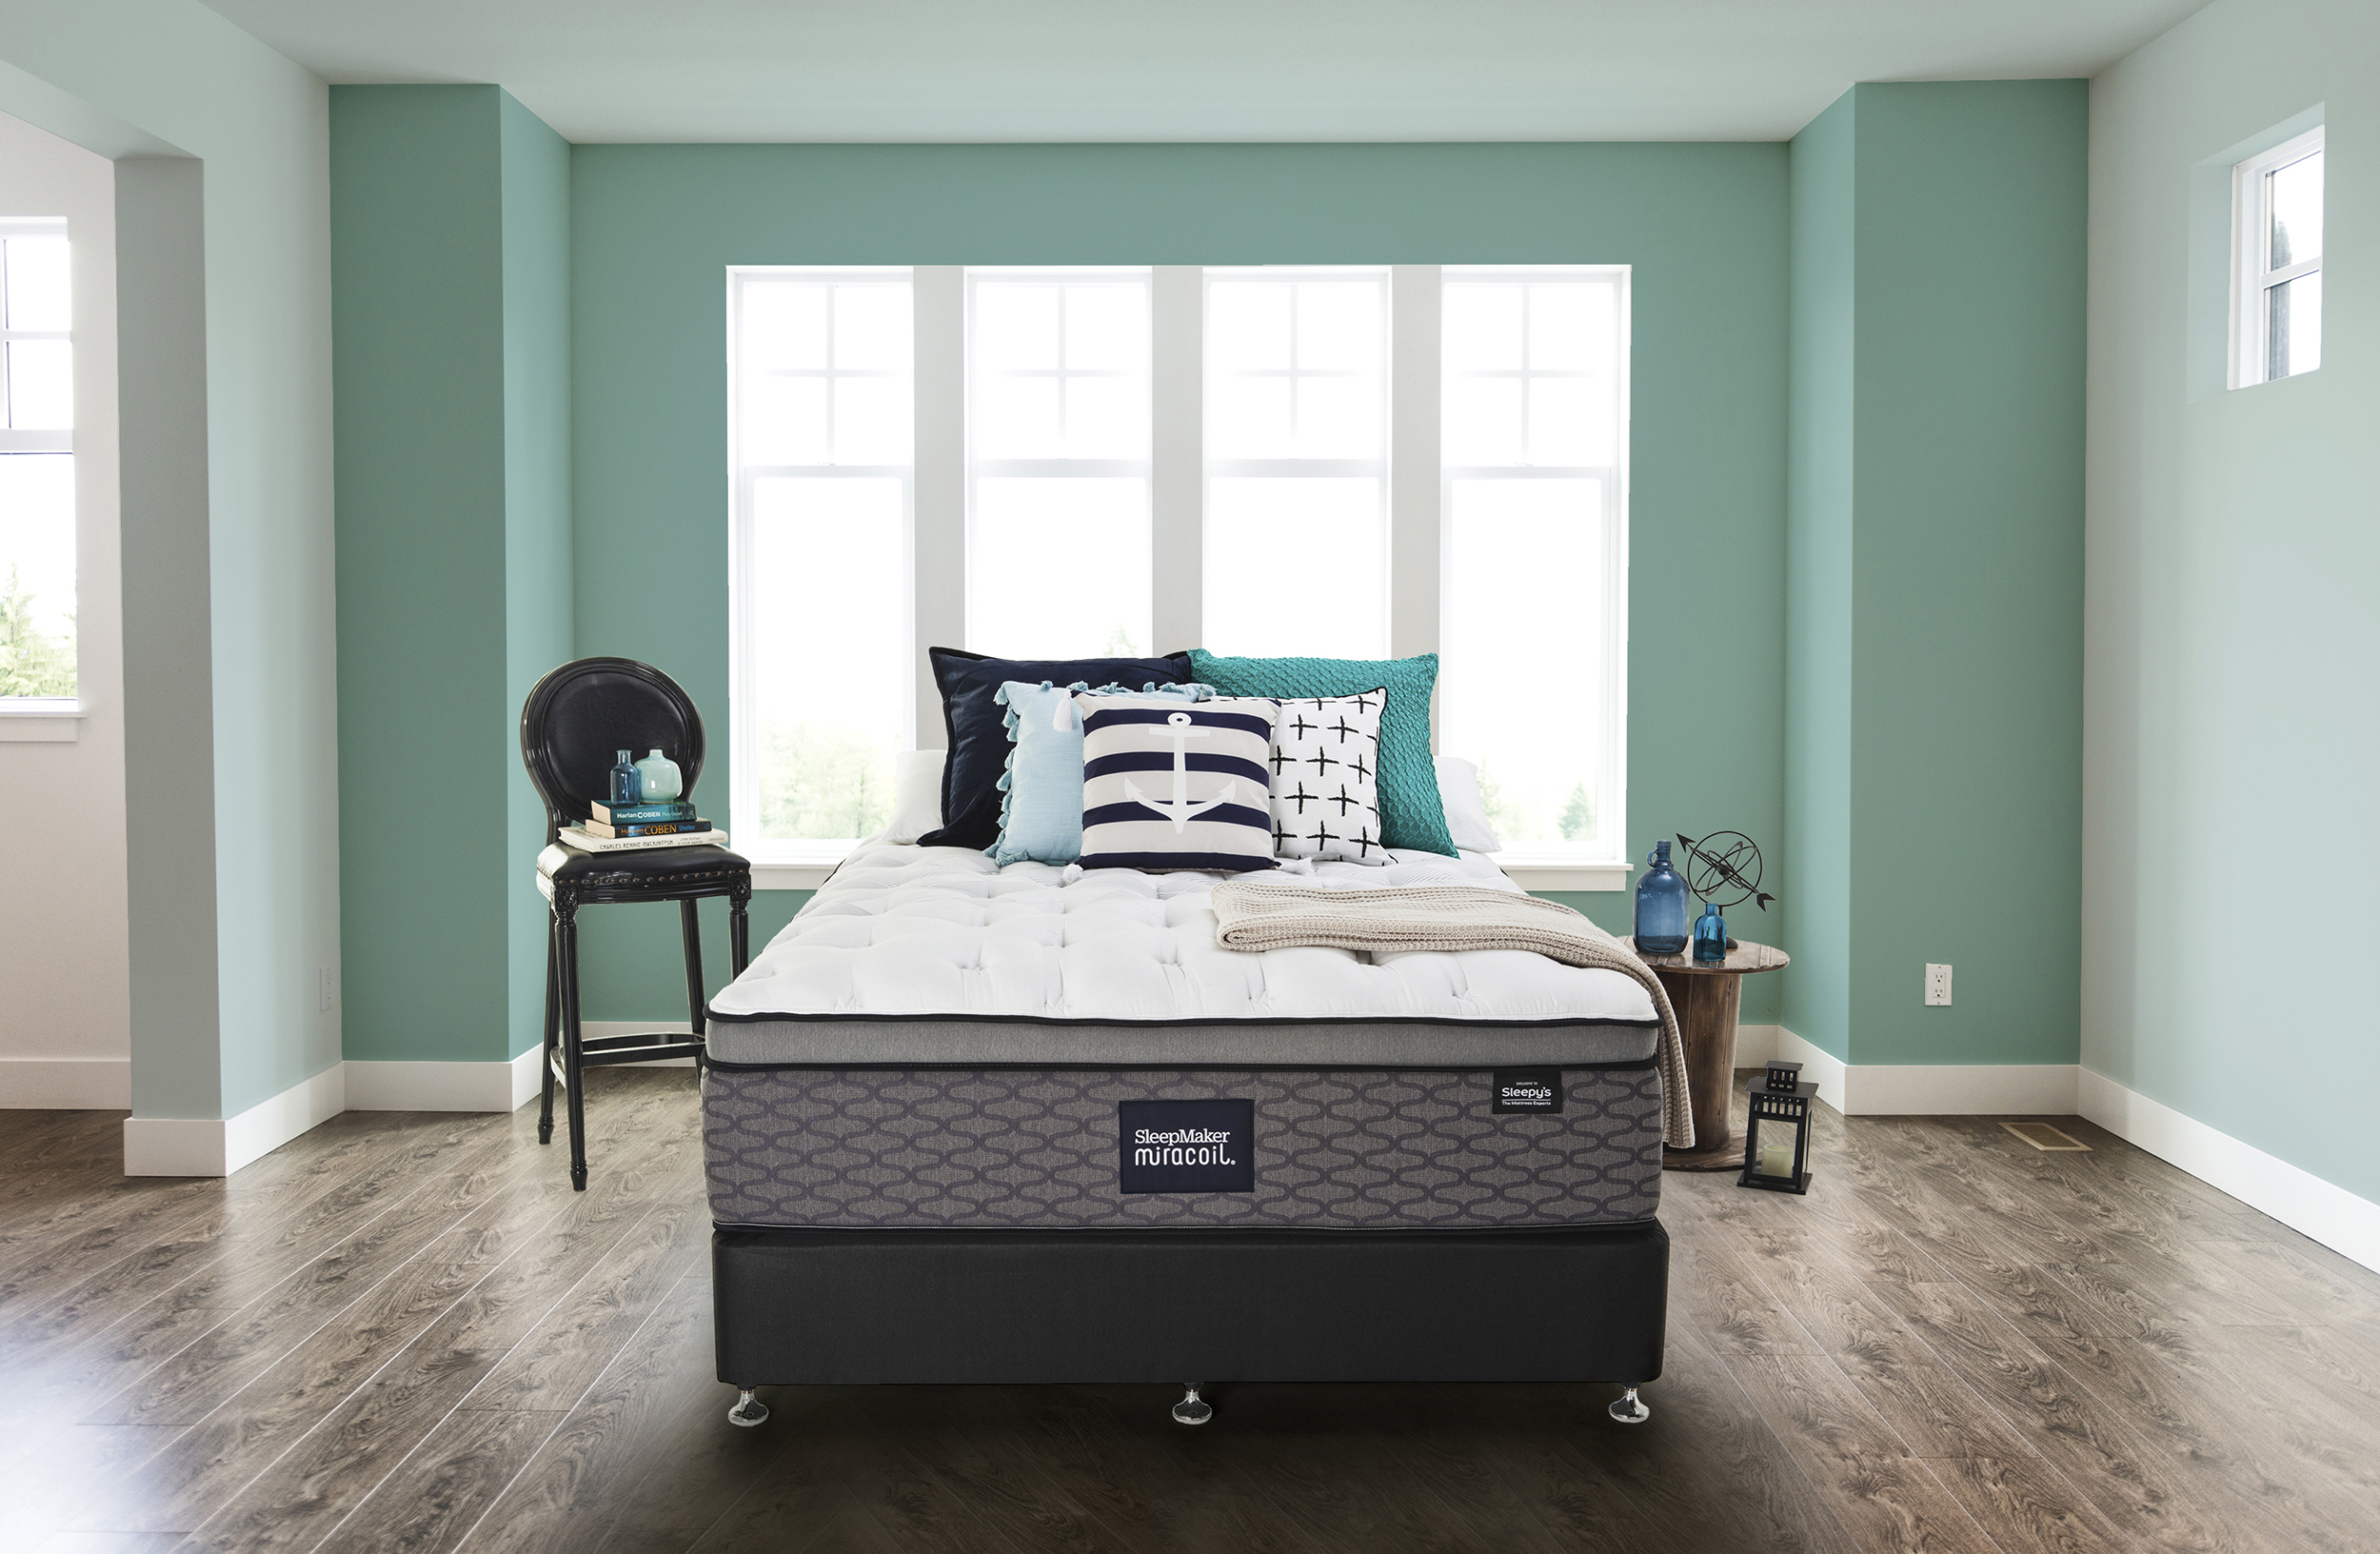 Sleepmaker Chiro Extend Mattress